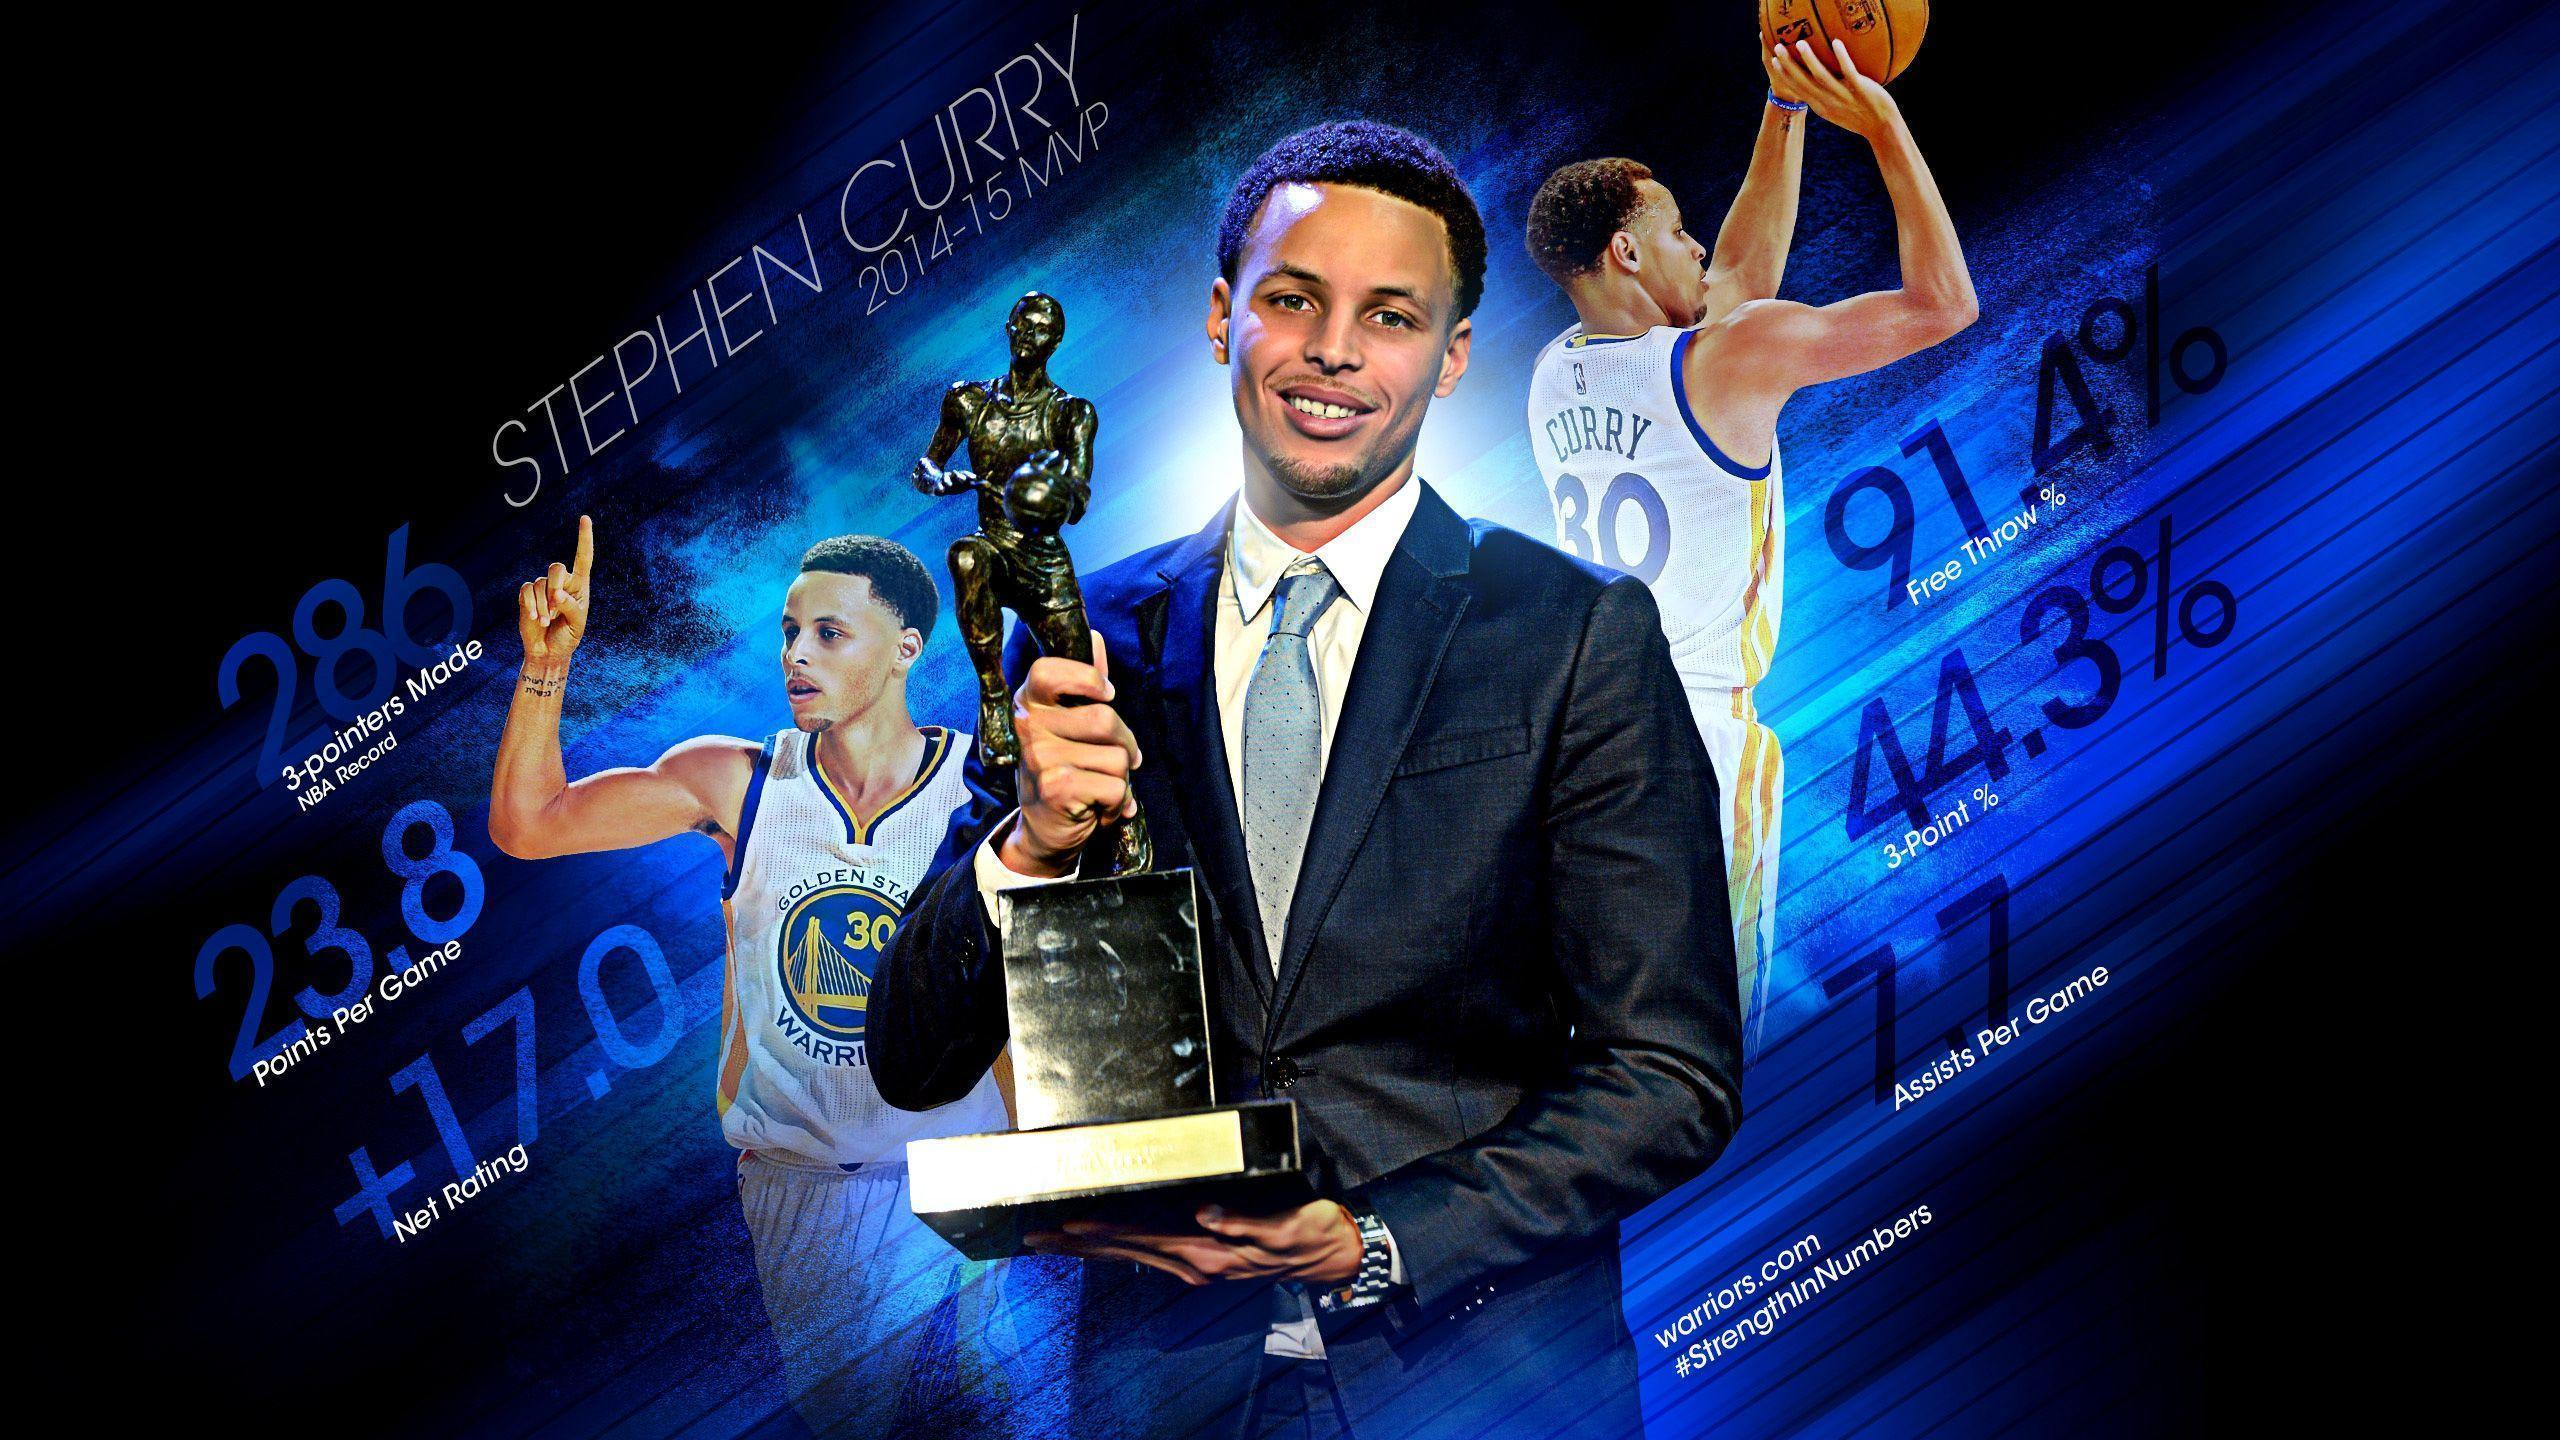 Sport Wallpaper Stephen Curry: 2017 Stephen Curry Wallpapers